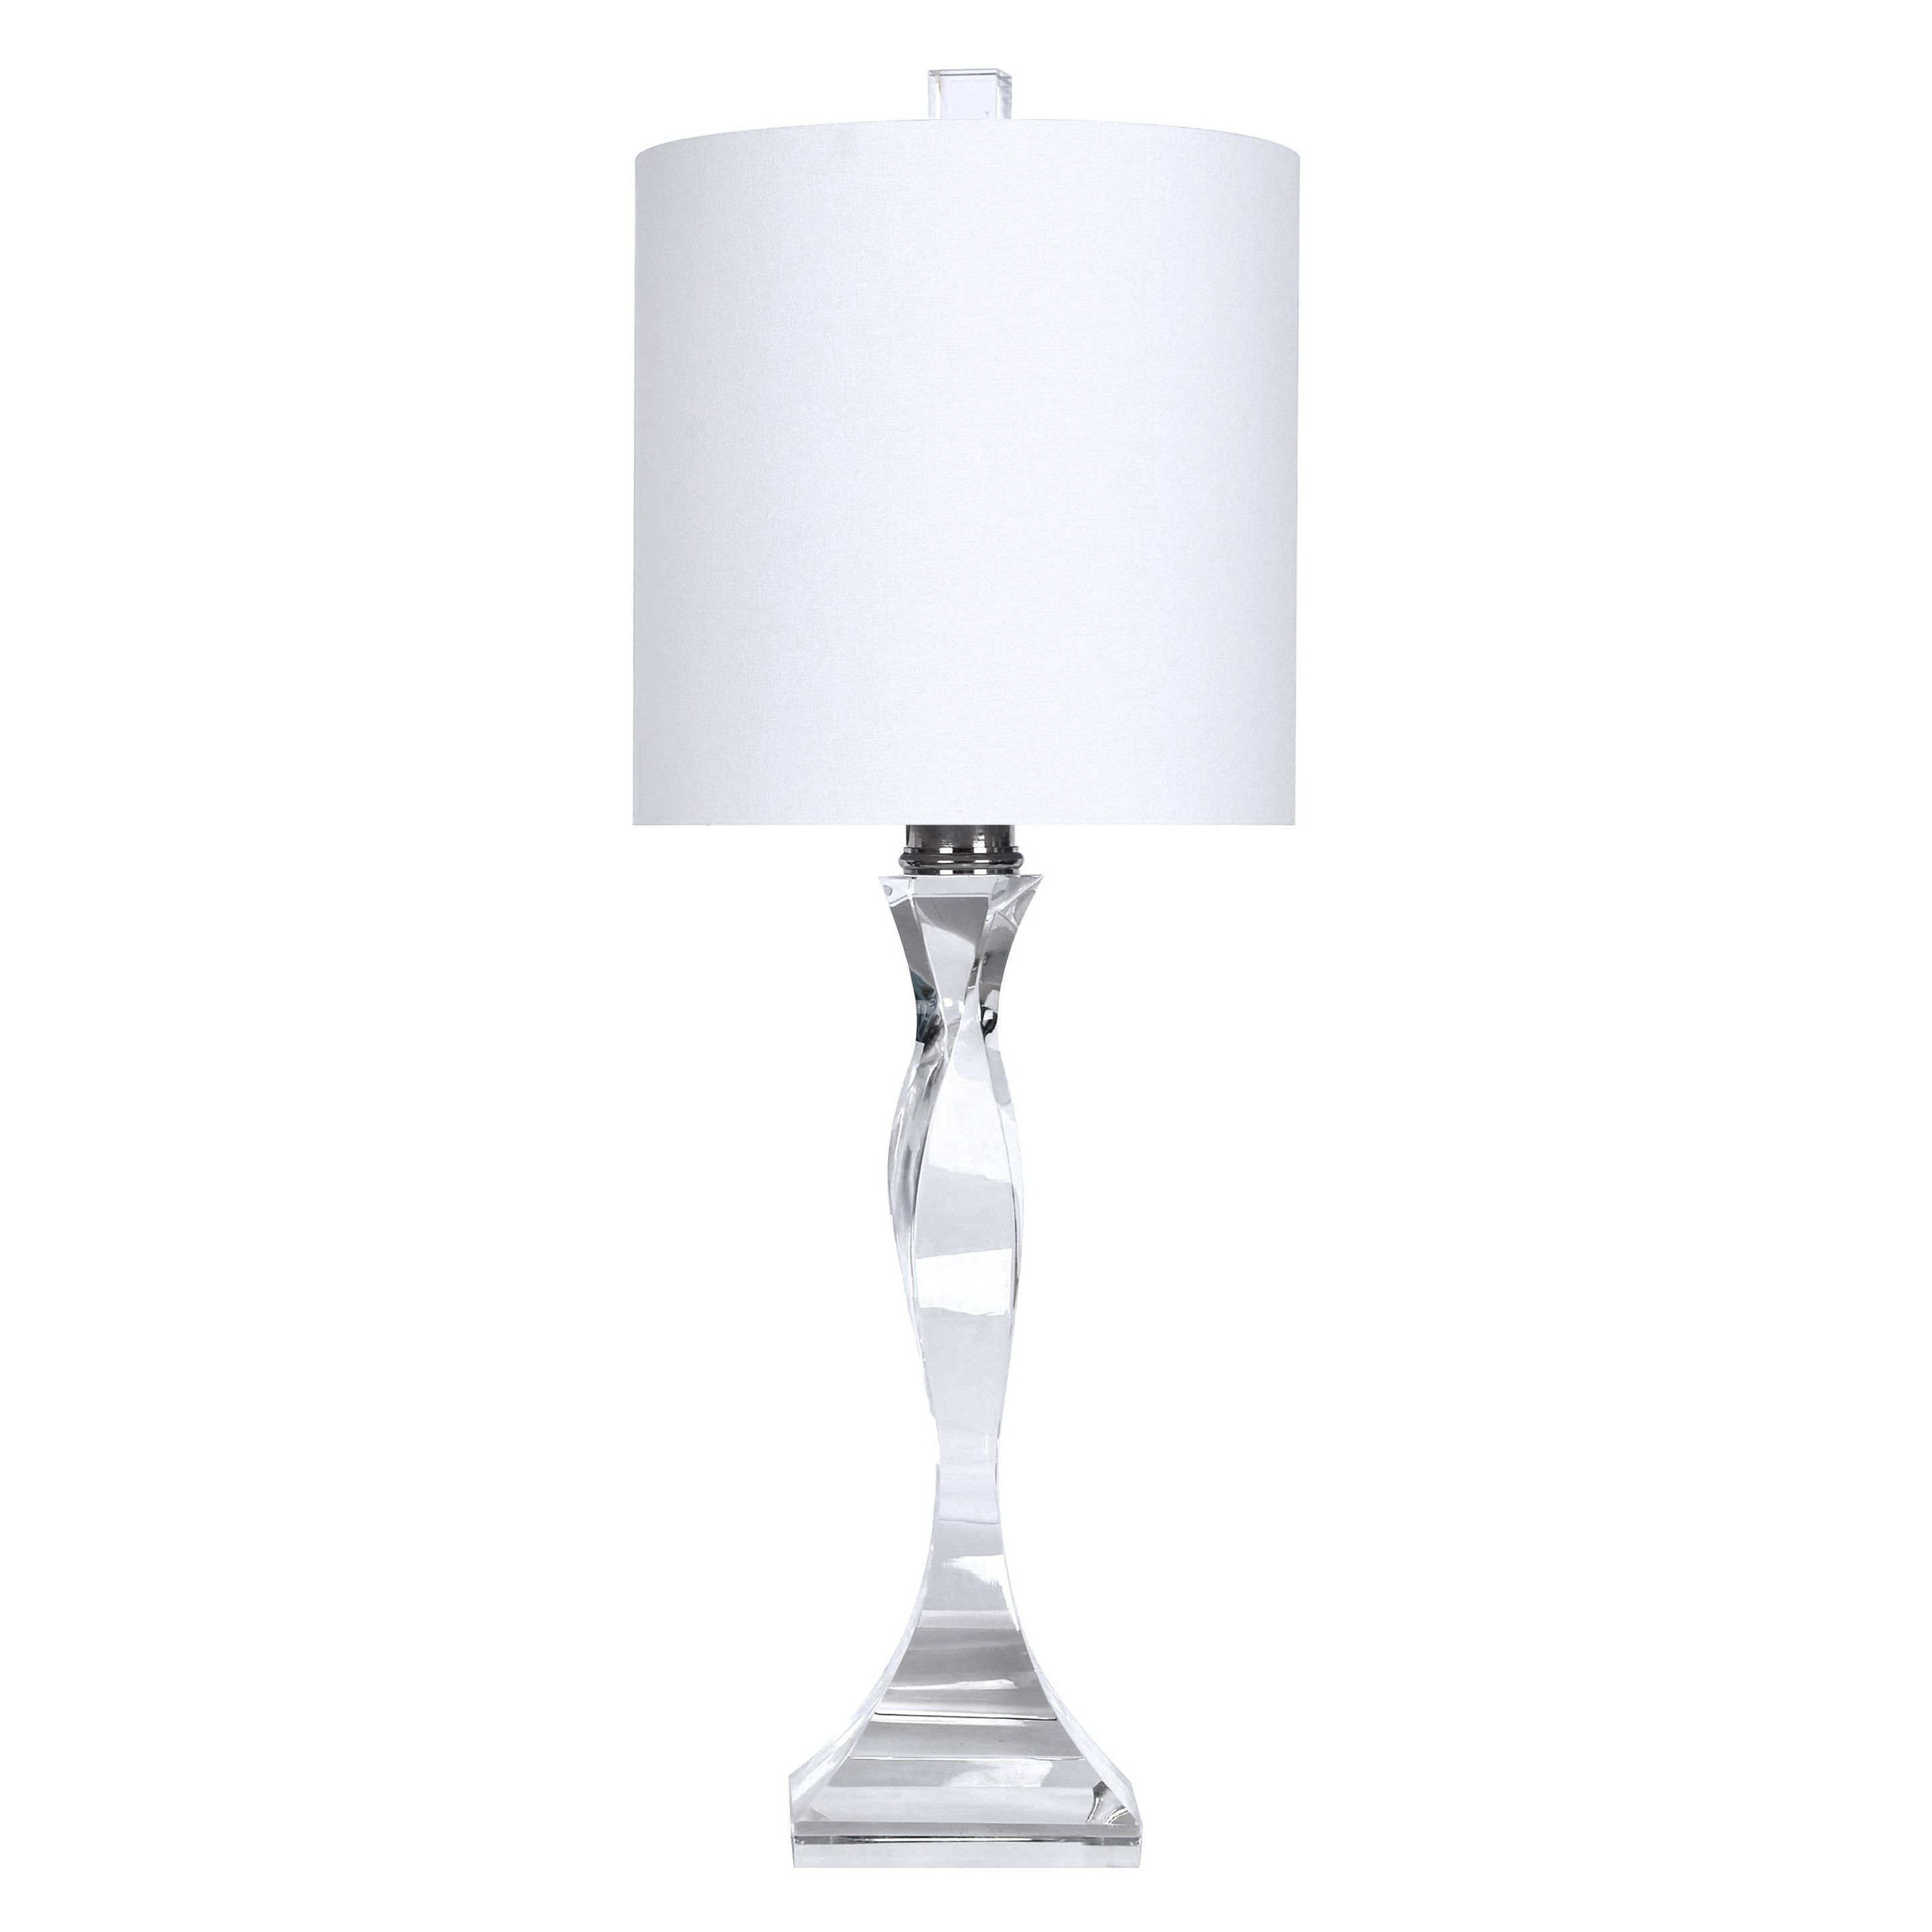 Grandview gallery genuine crystal 24 table lamp bathroom grandview gallery genuine crystal 24 table lamp geotapseo Choice Image